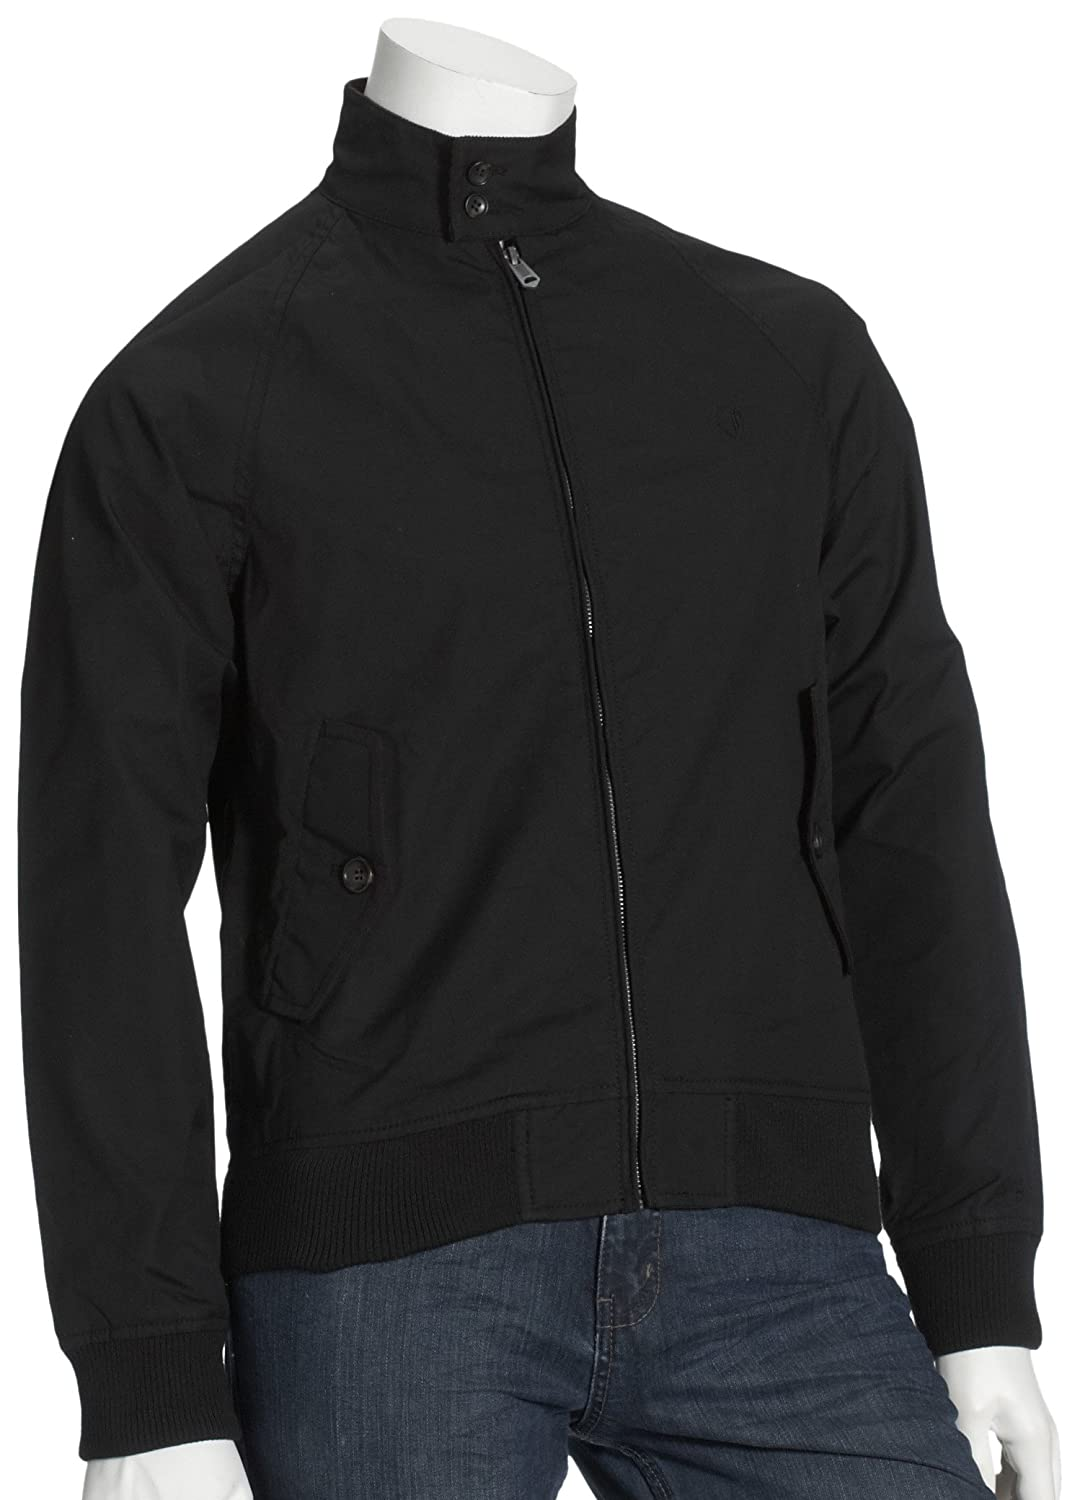 Ben Sherman Harrington MB4411 Men's Jacket